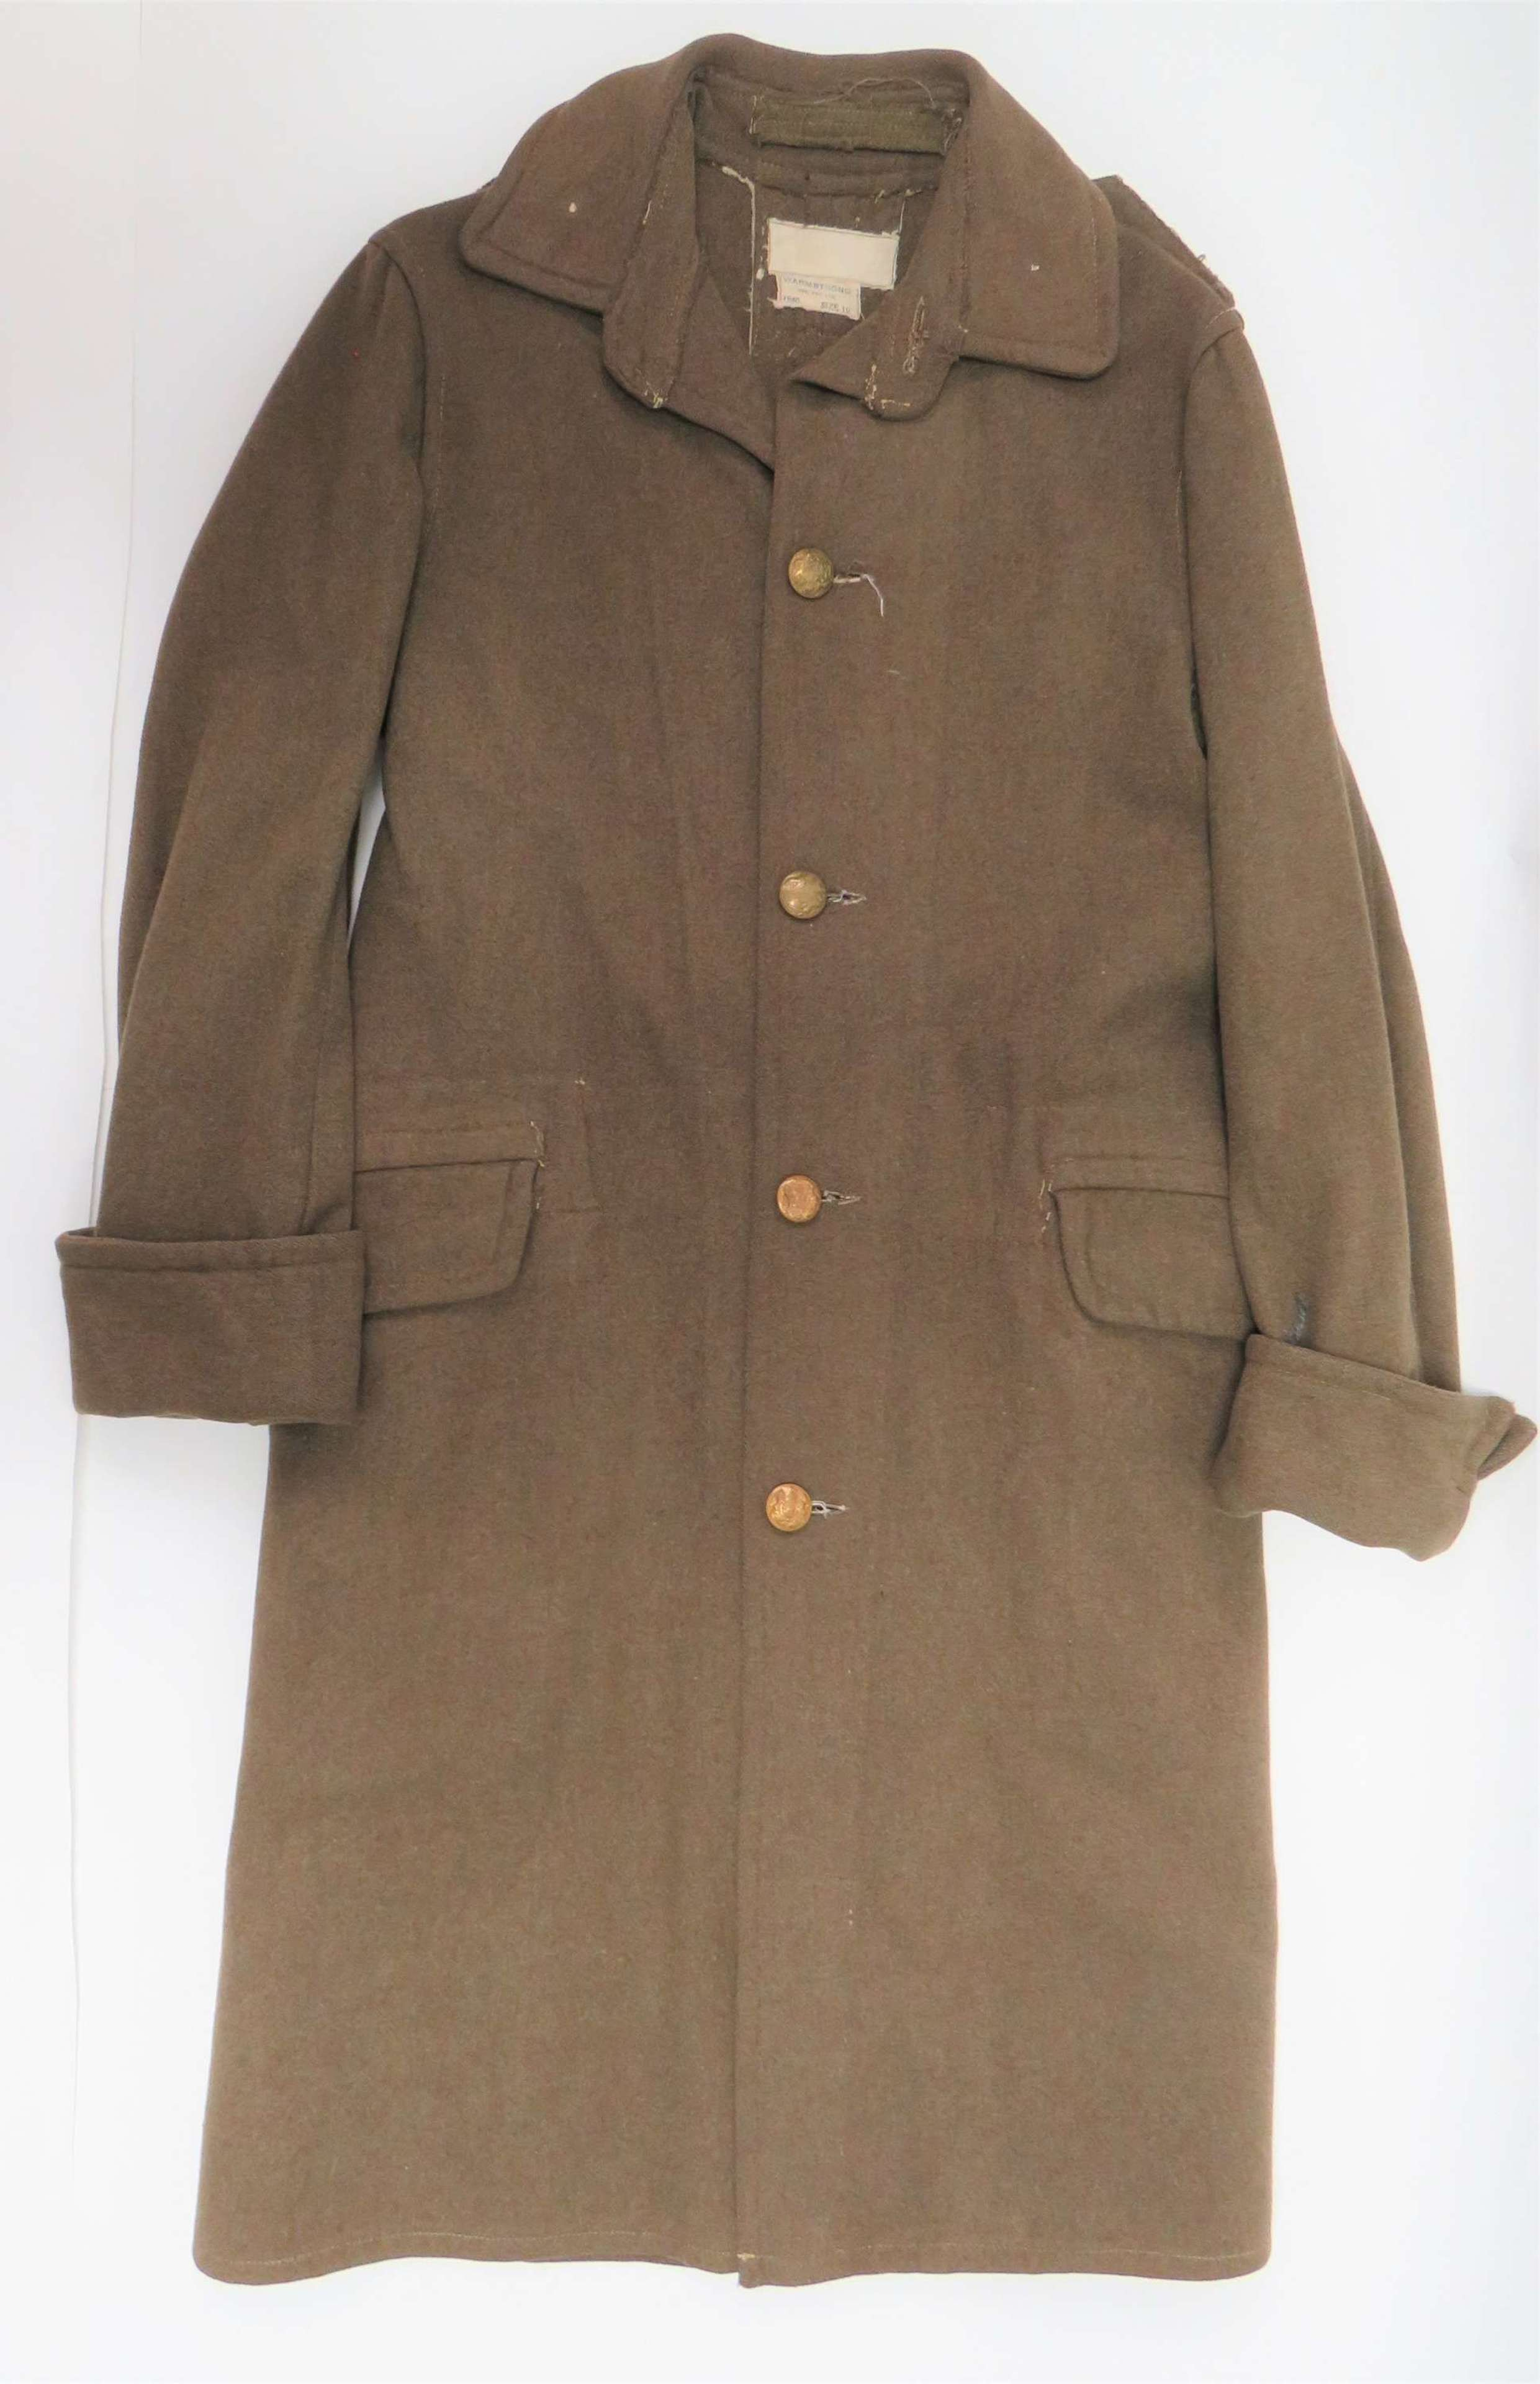 Rare 1940 Dated Battle of France Other Ranks Greatcoat